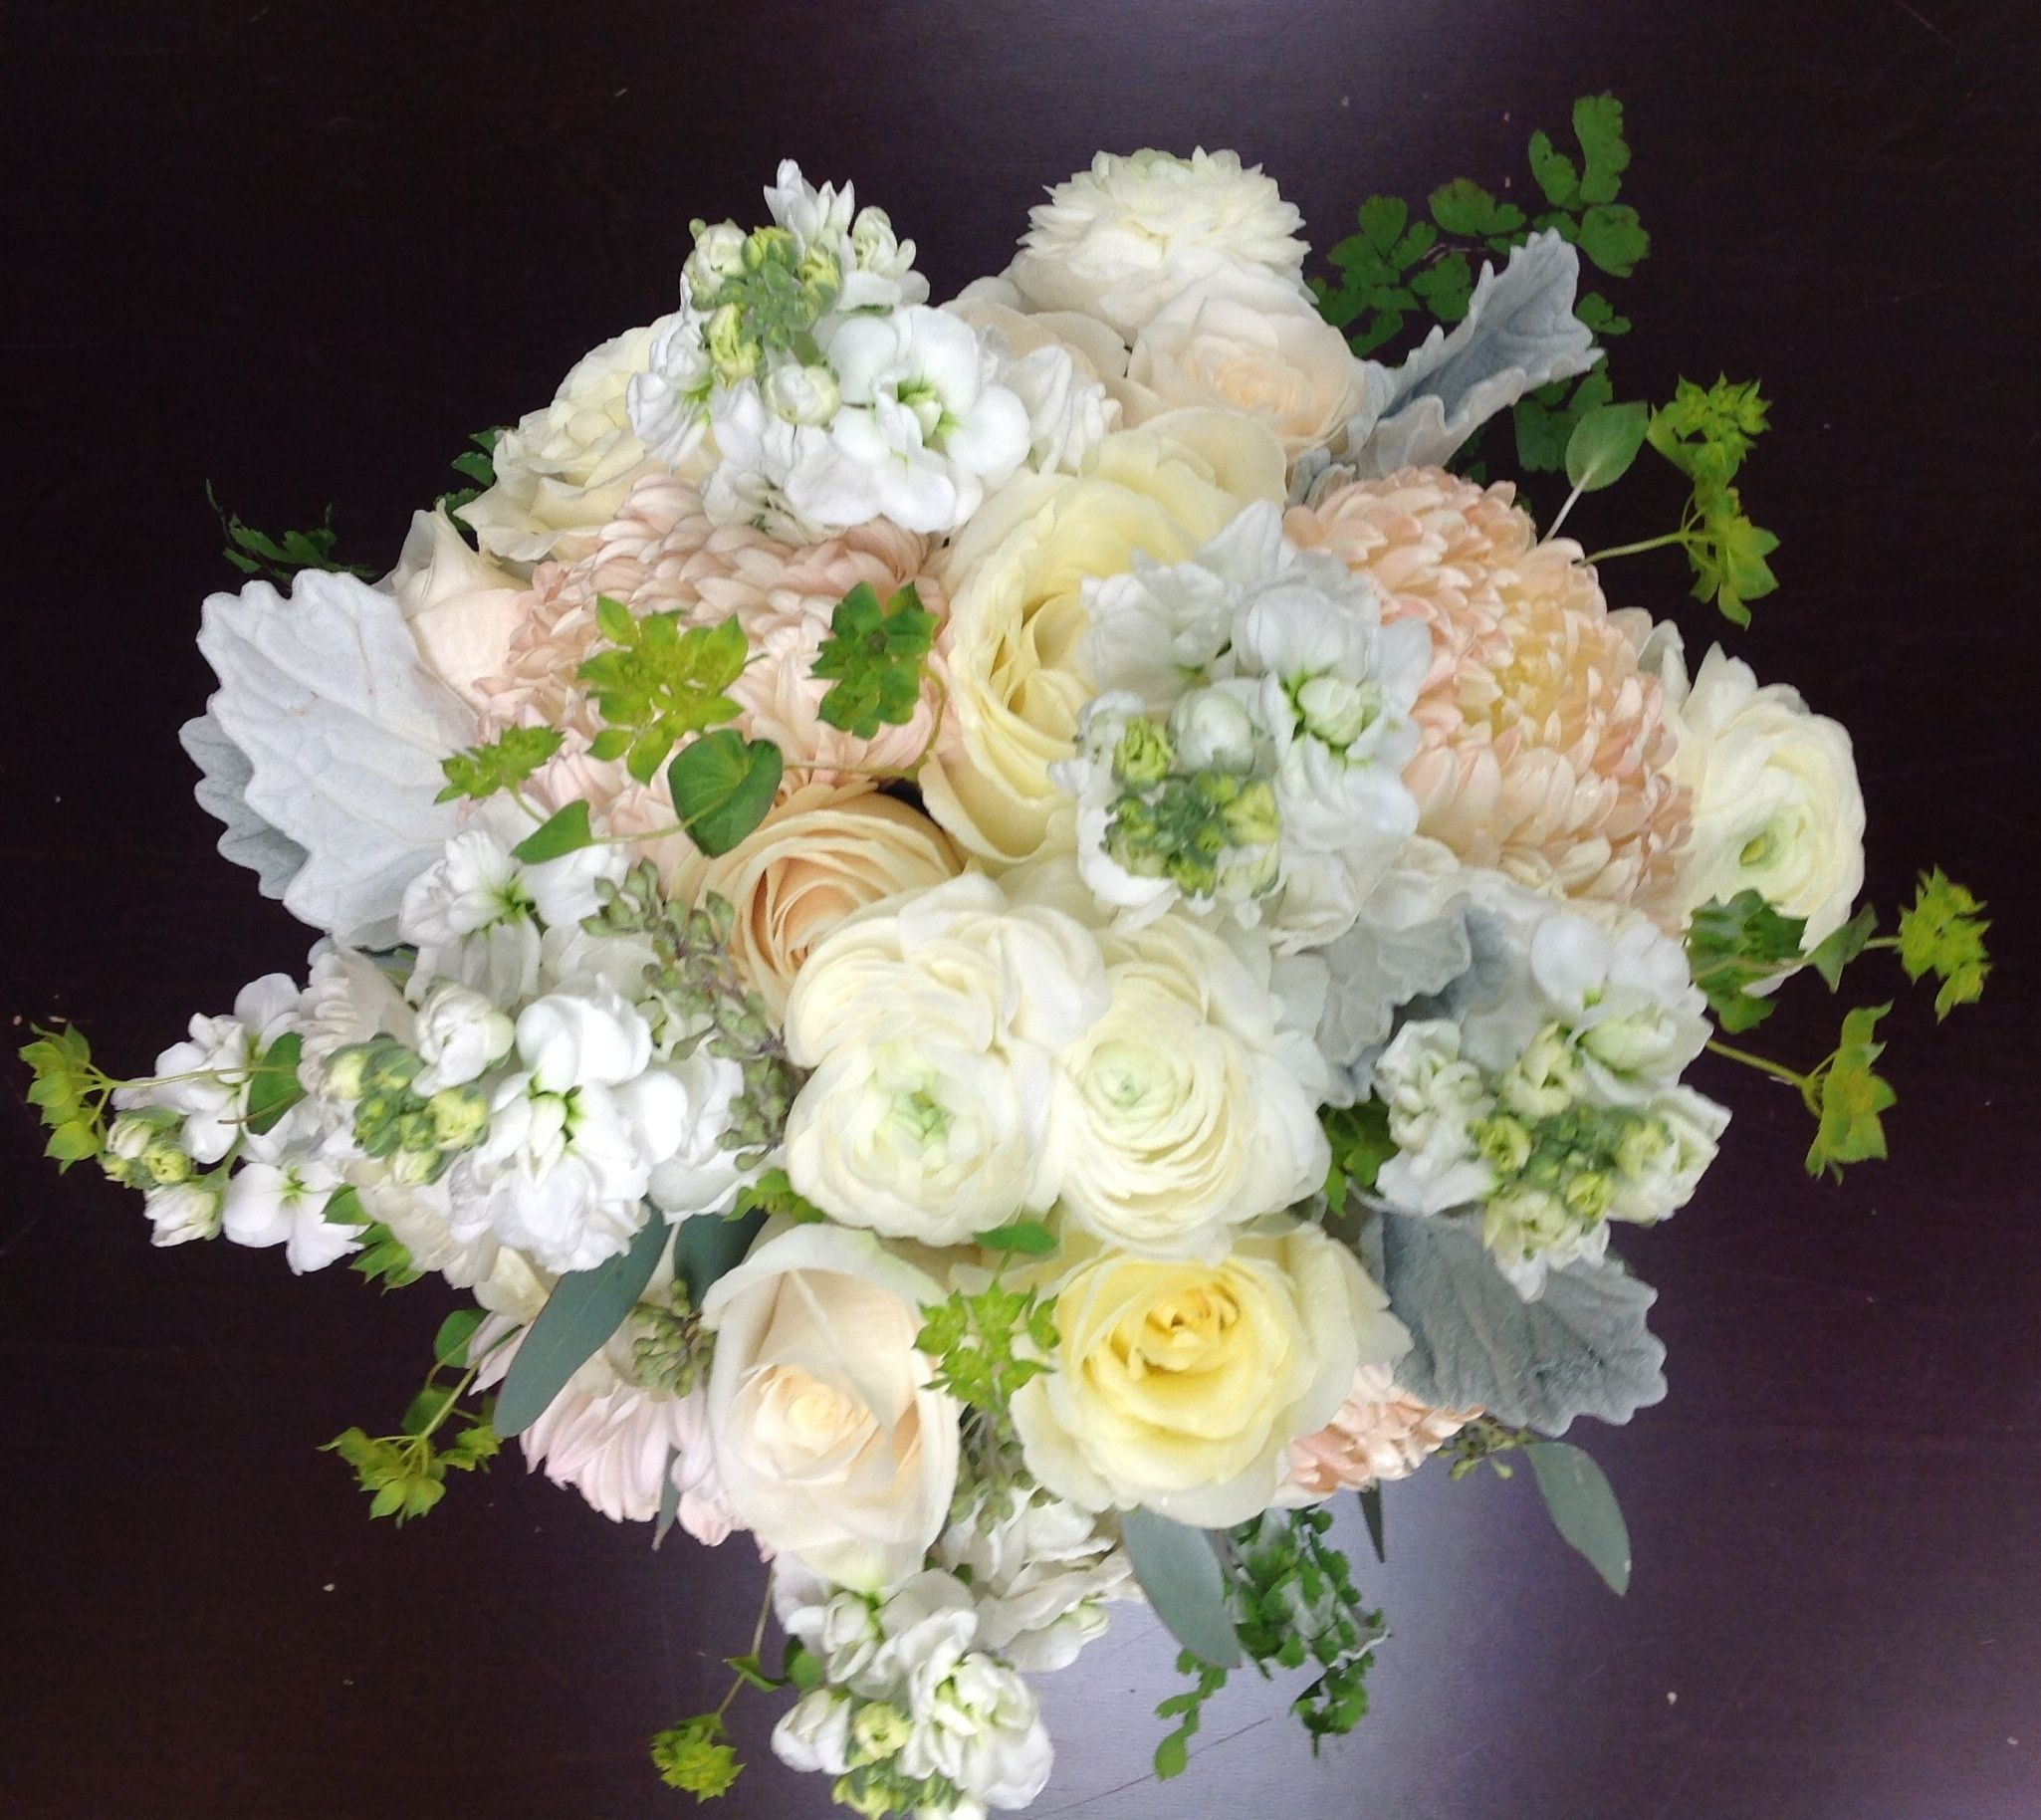 bridal bouquet with hydrangea stock roses garden roses spray roses ranunculus - Garden Rose And Hydrangea Bouquet